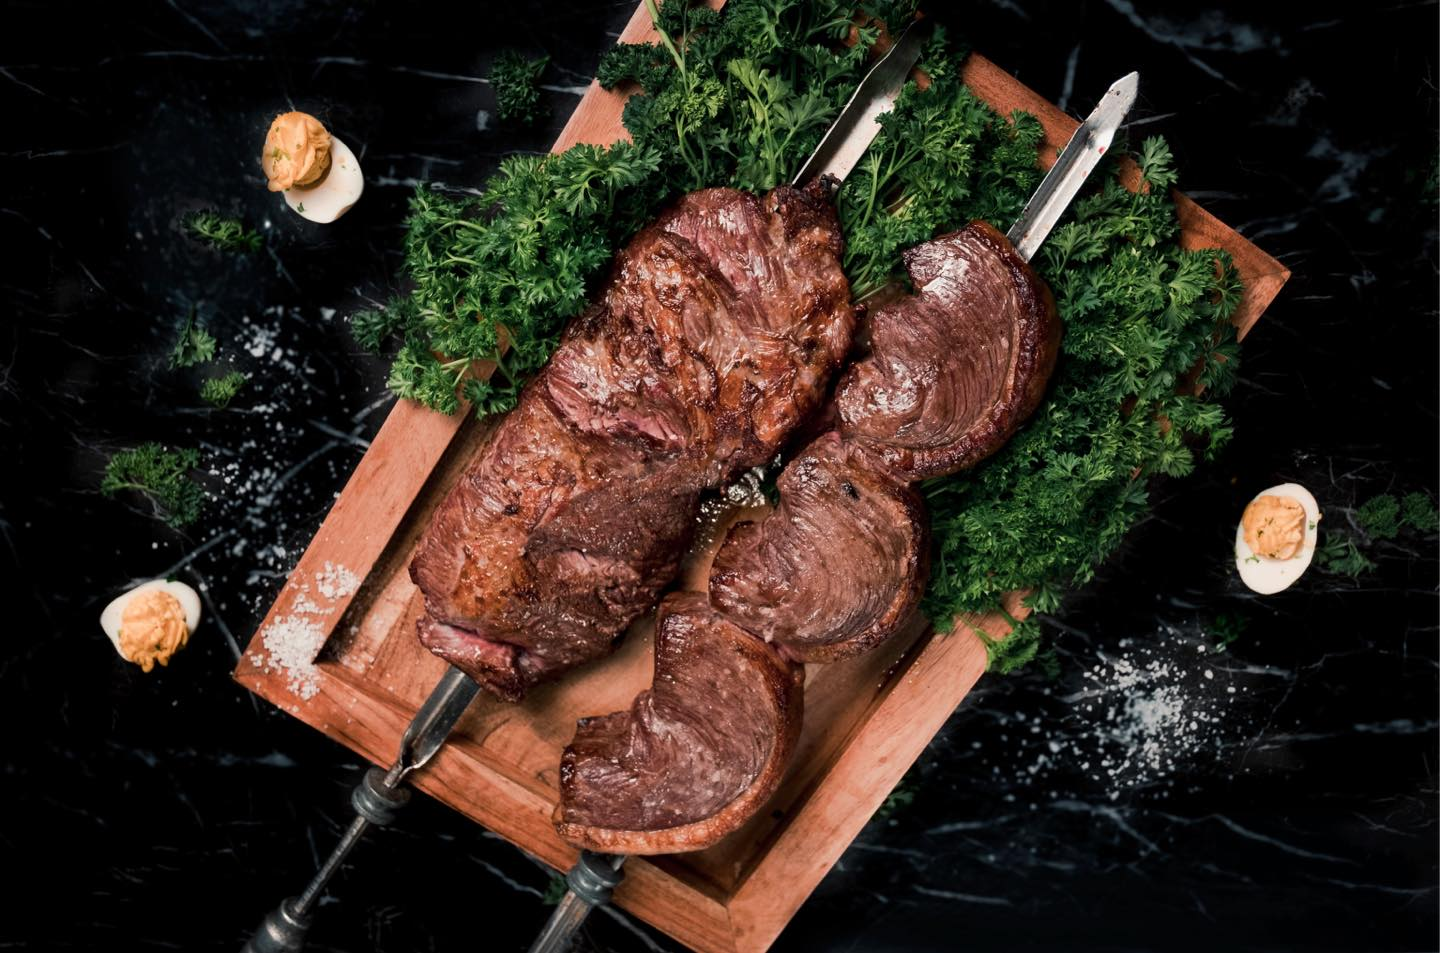 Meat on two skewers on a cutting board